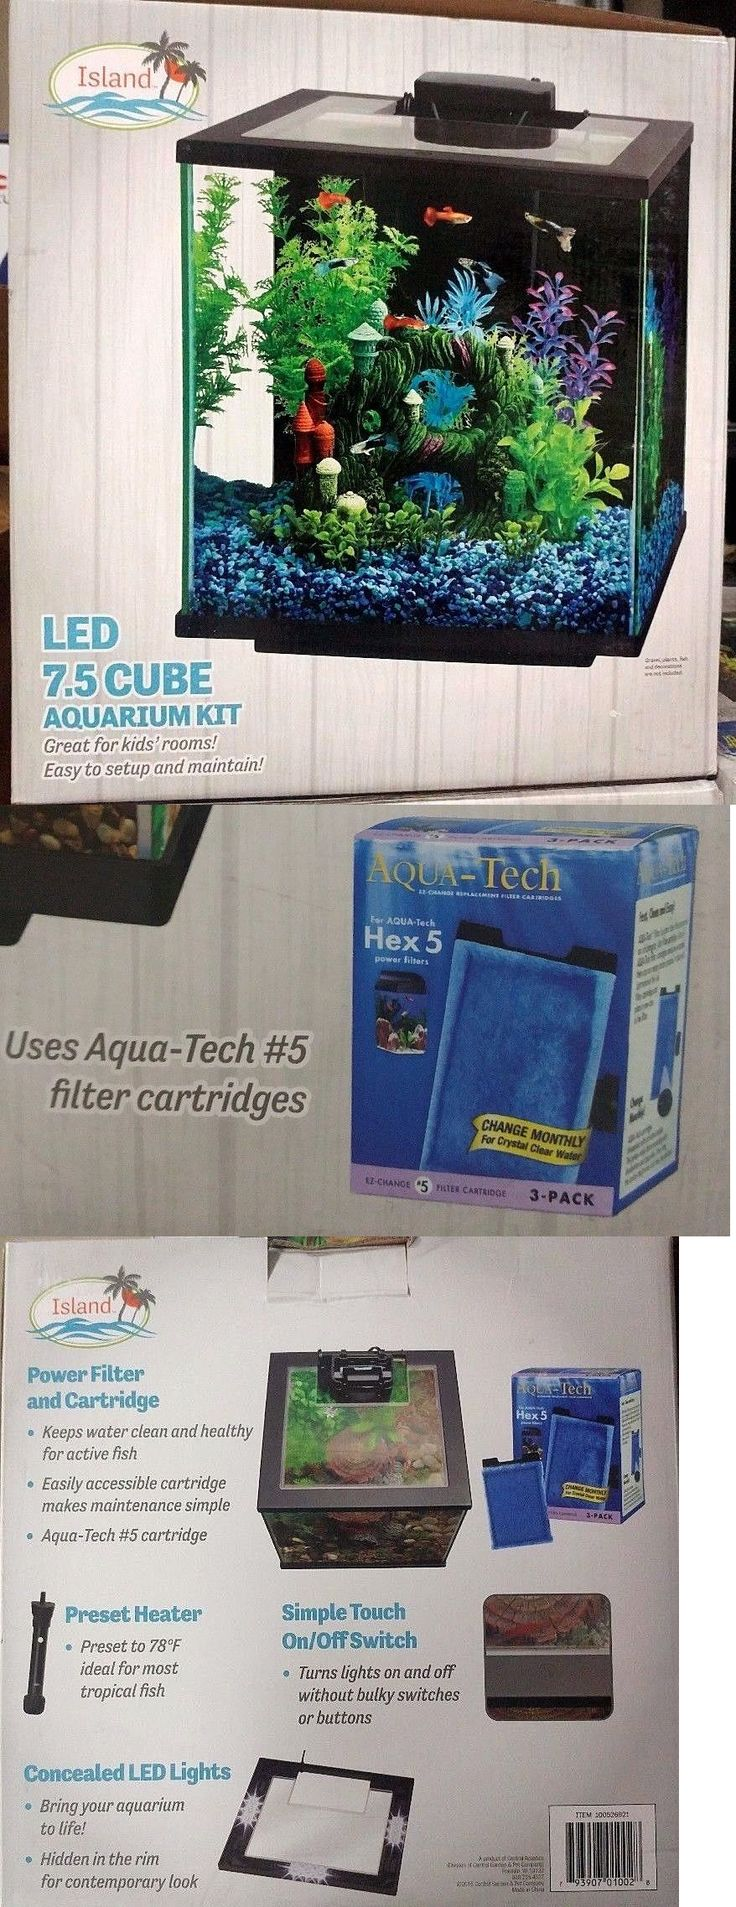 Aquariums and Tanks 20755: Central Aquatics Island 7.5-Gallon Cube Glass Aquarium Kit With Led Light New! -> BUY IT NOW ONLY: $58.5 on eBay!